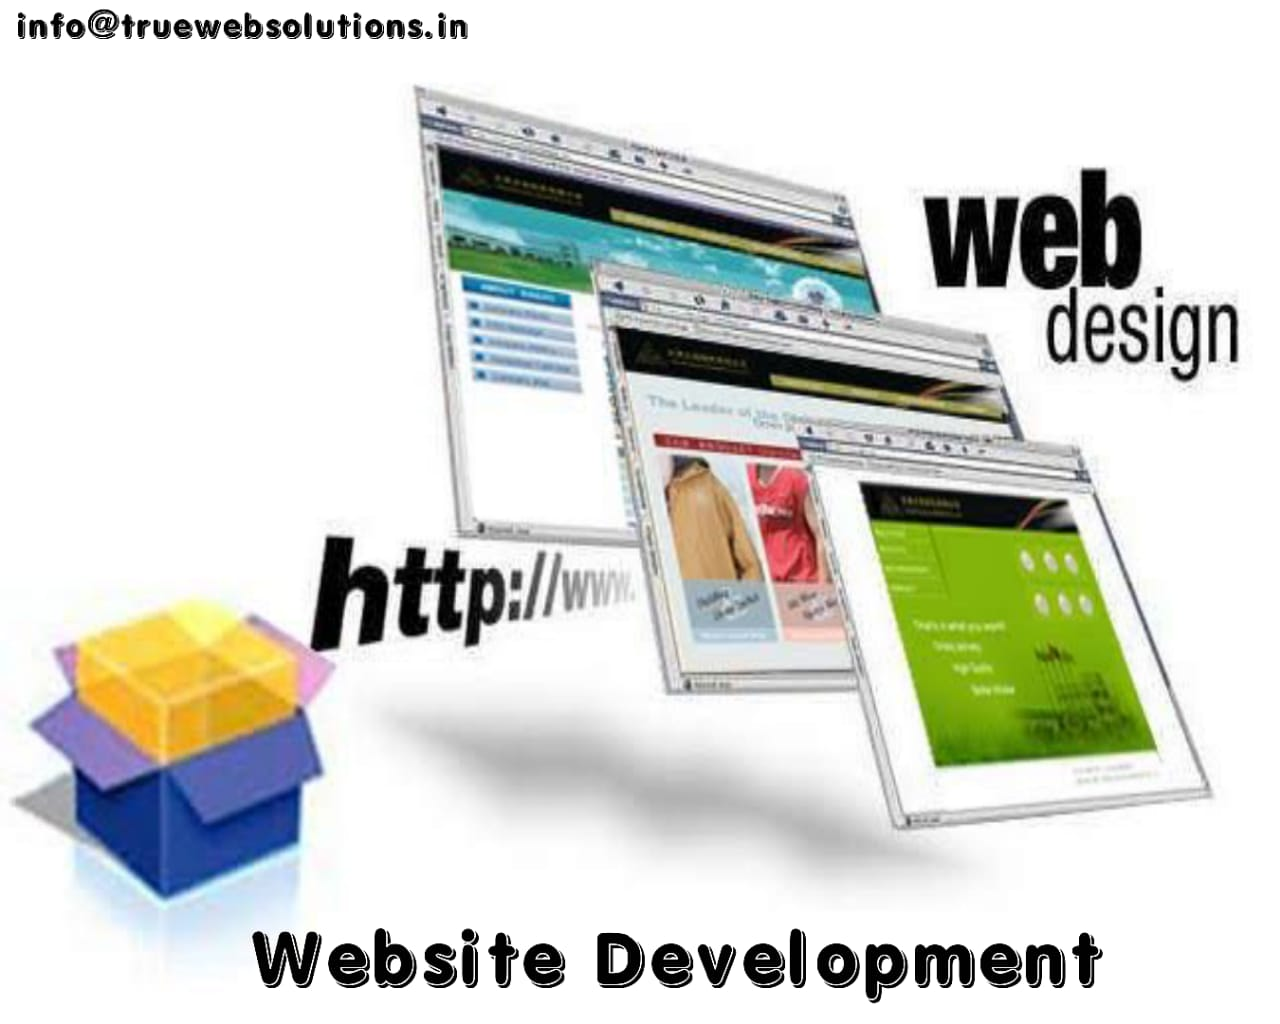 Design High quality | Professional Websites for any kind of Business.